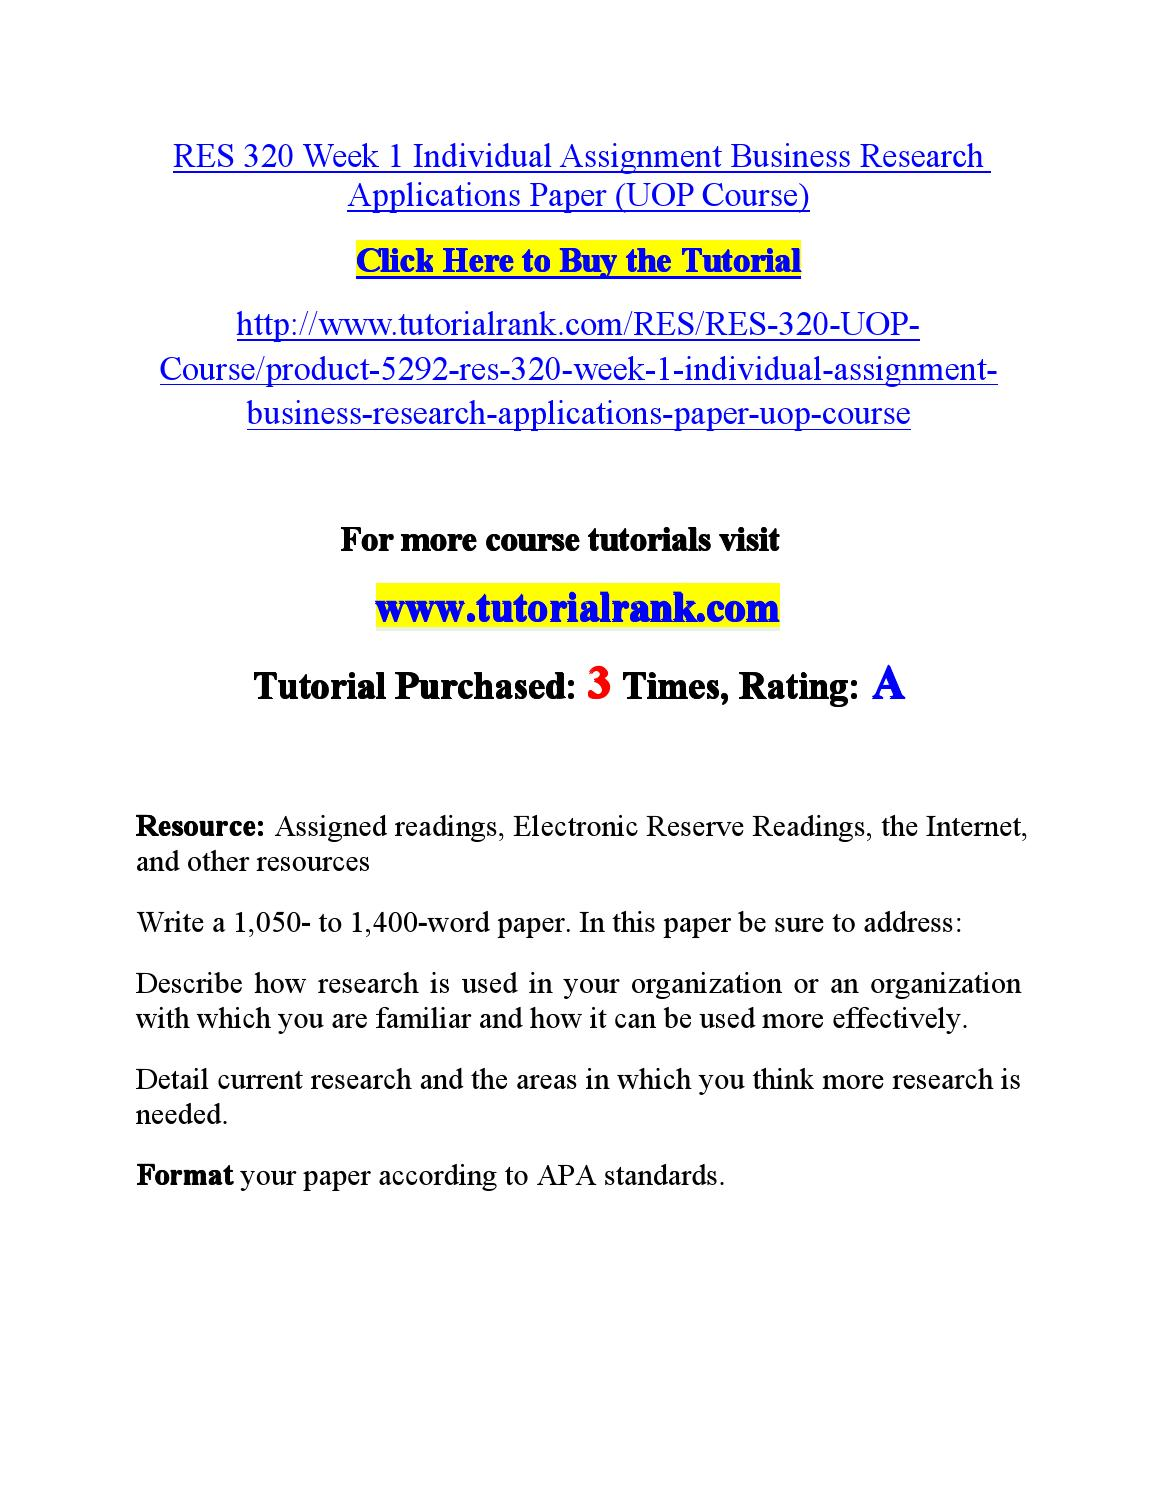 Business research application paper free cover letter for captain license